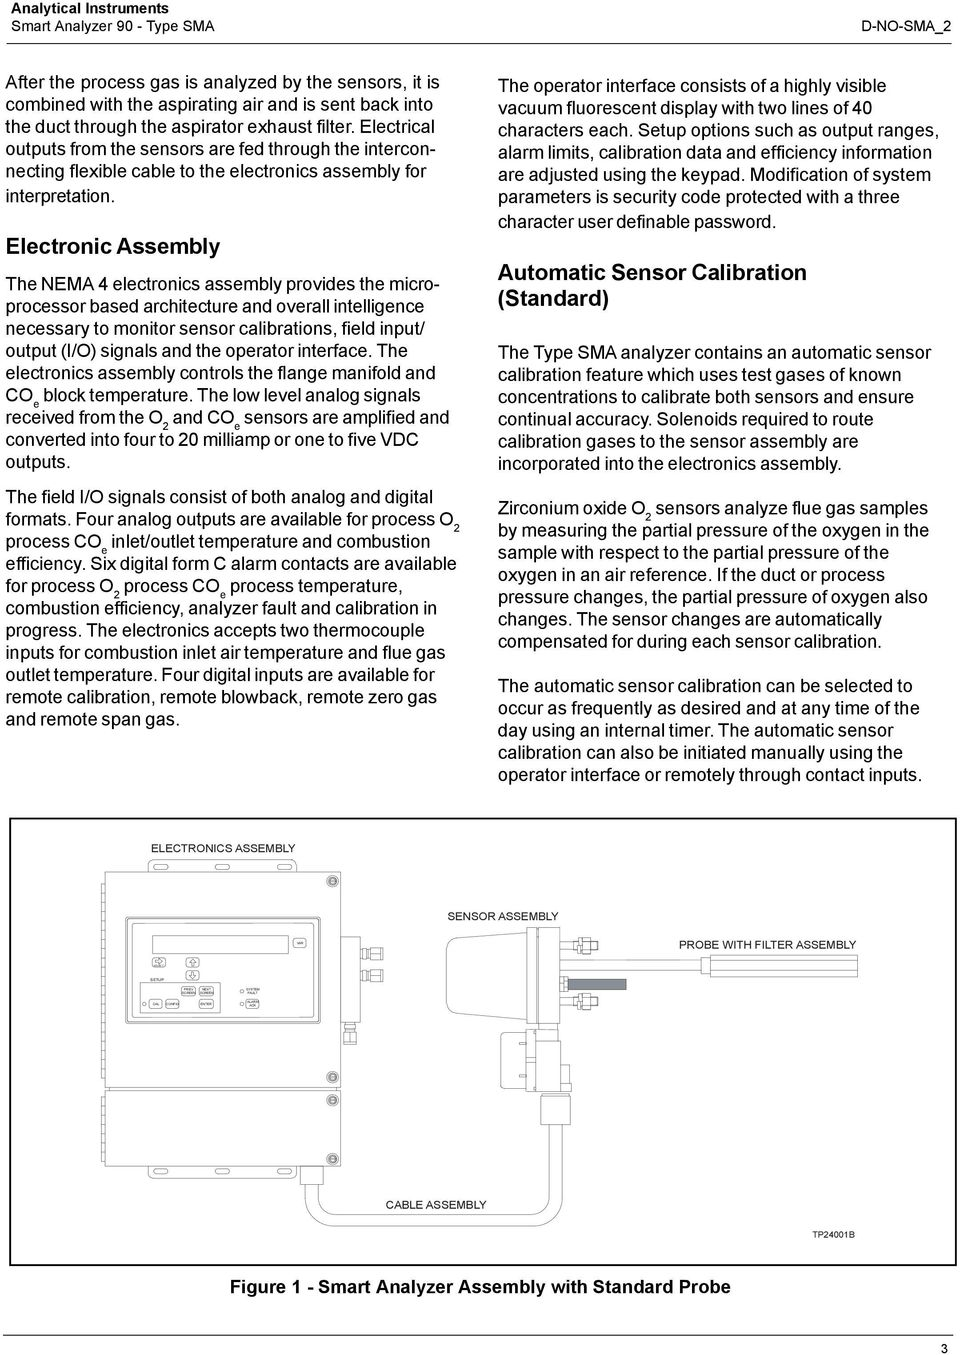 Electronic Assembly The NEMA 4 electronics assembly provides the microprocessor based architecture and overall intelligence necessary to monitor sensor calibrations, field input/ output (I/O) signals